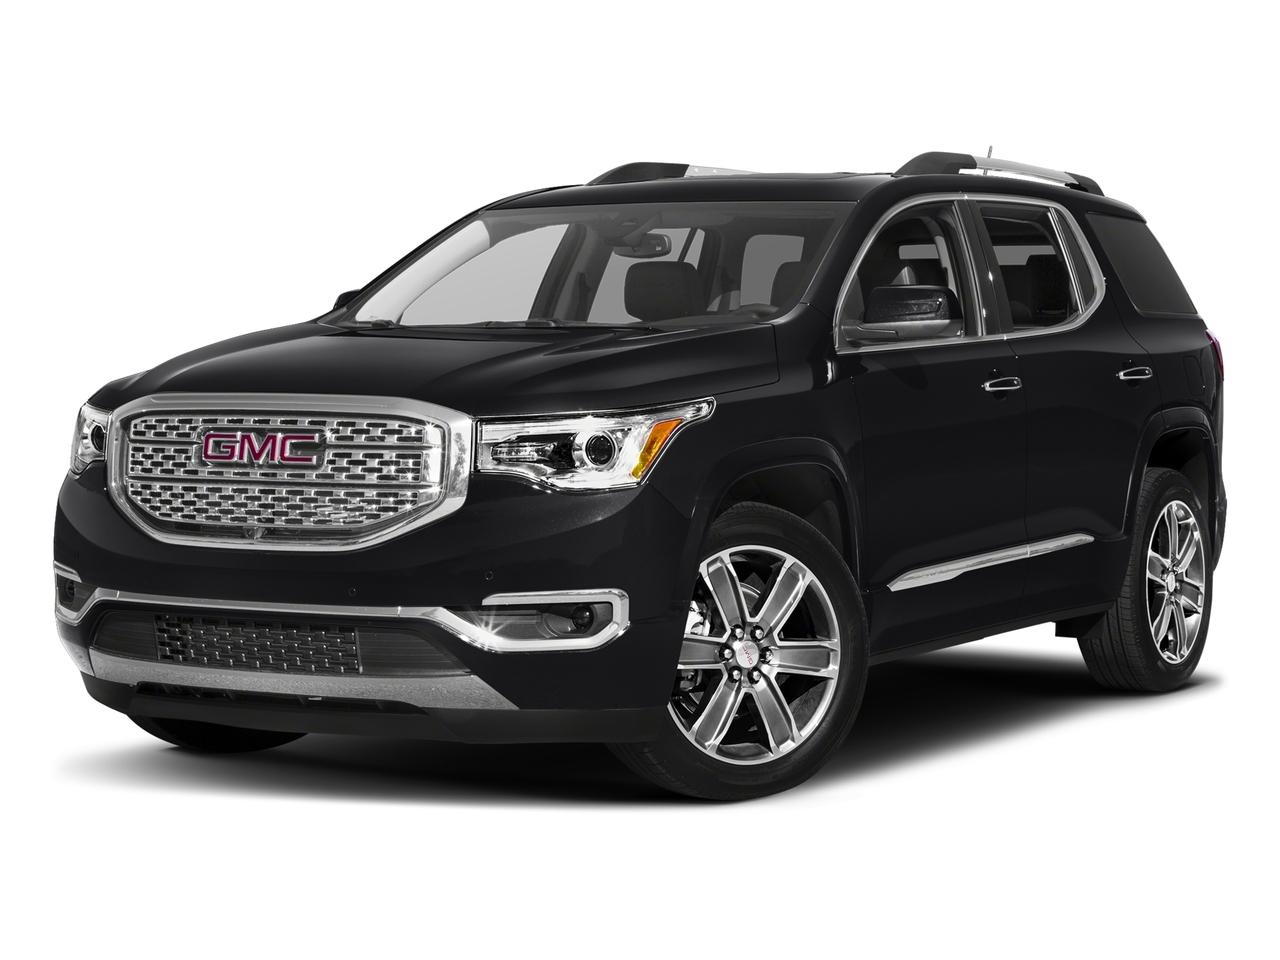 2017 GMC Acadia Vehicle Photo in Oshkosh, WI 54904